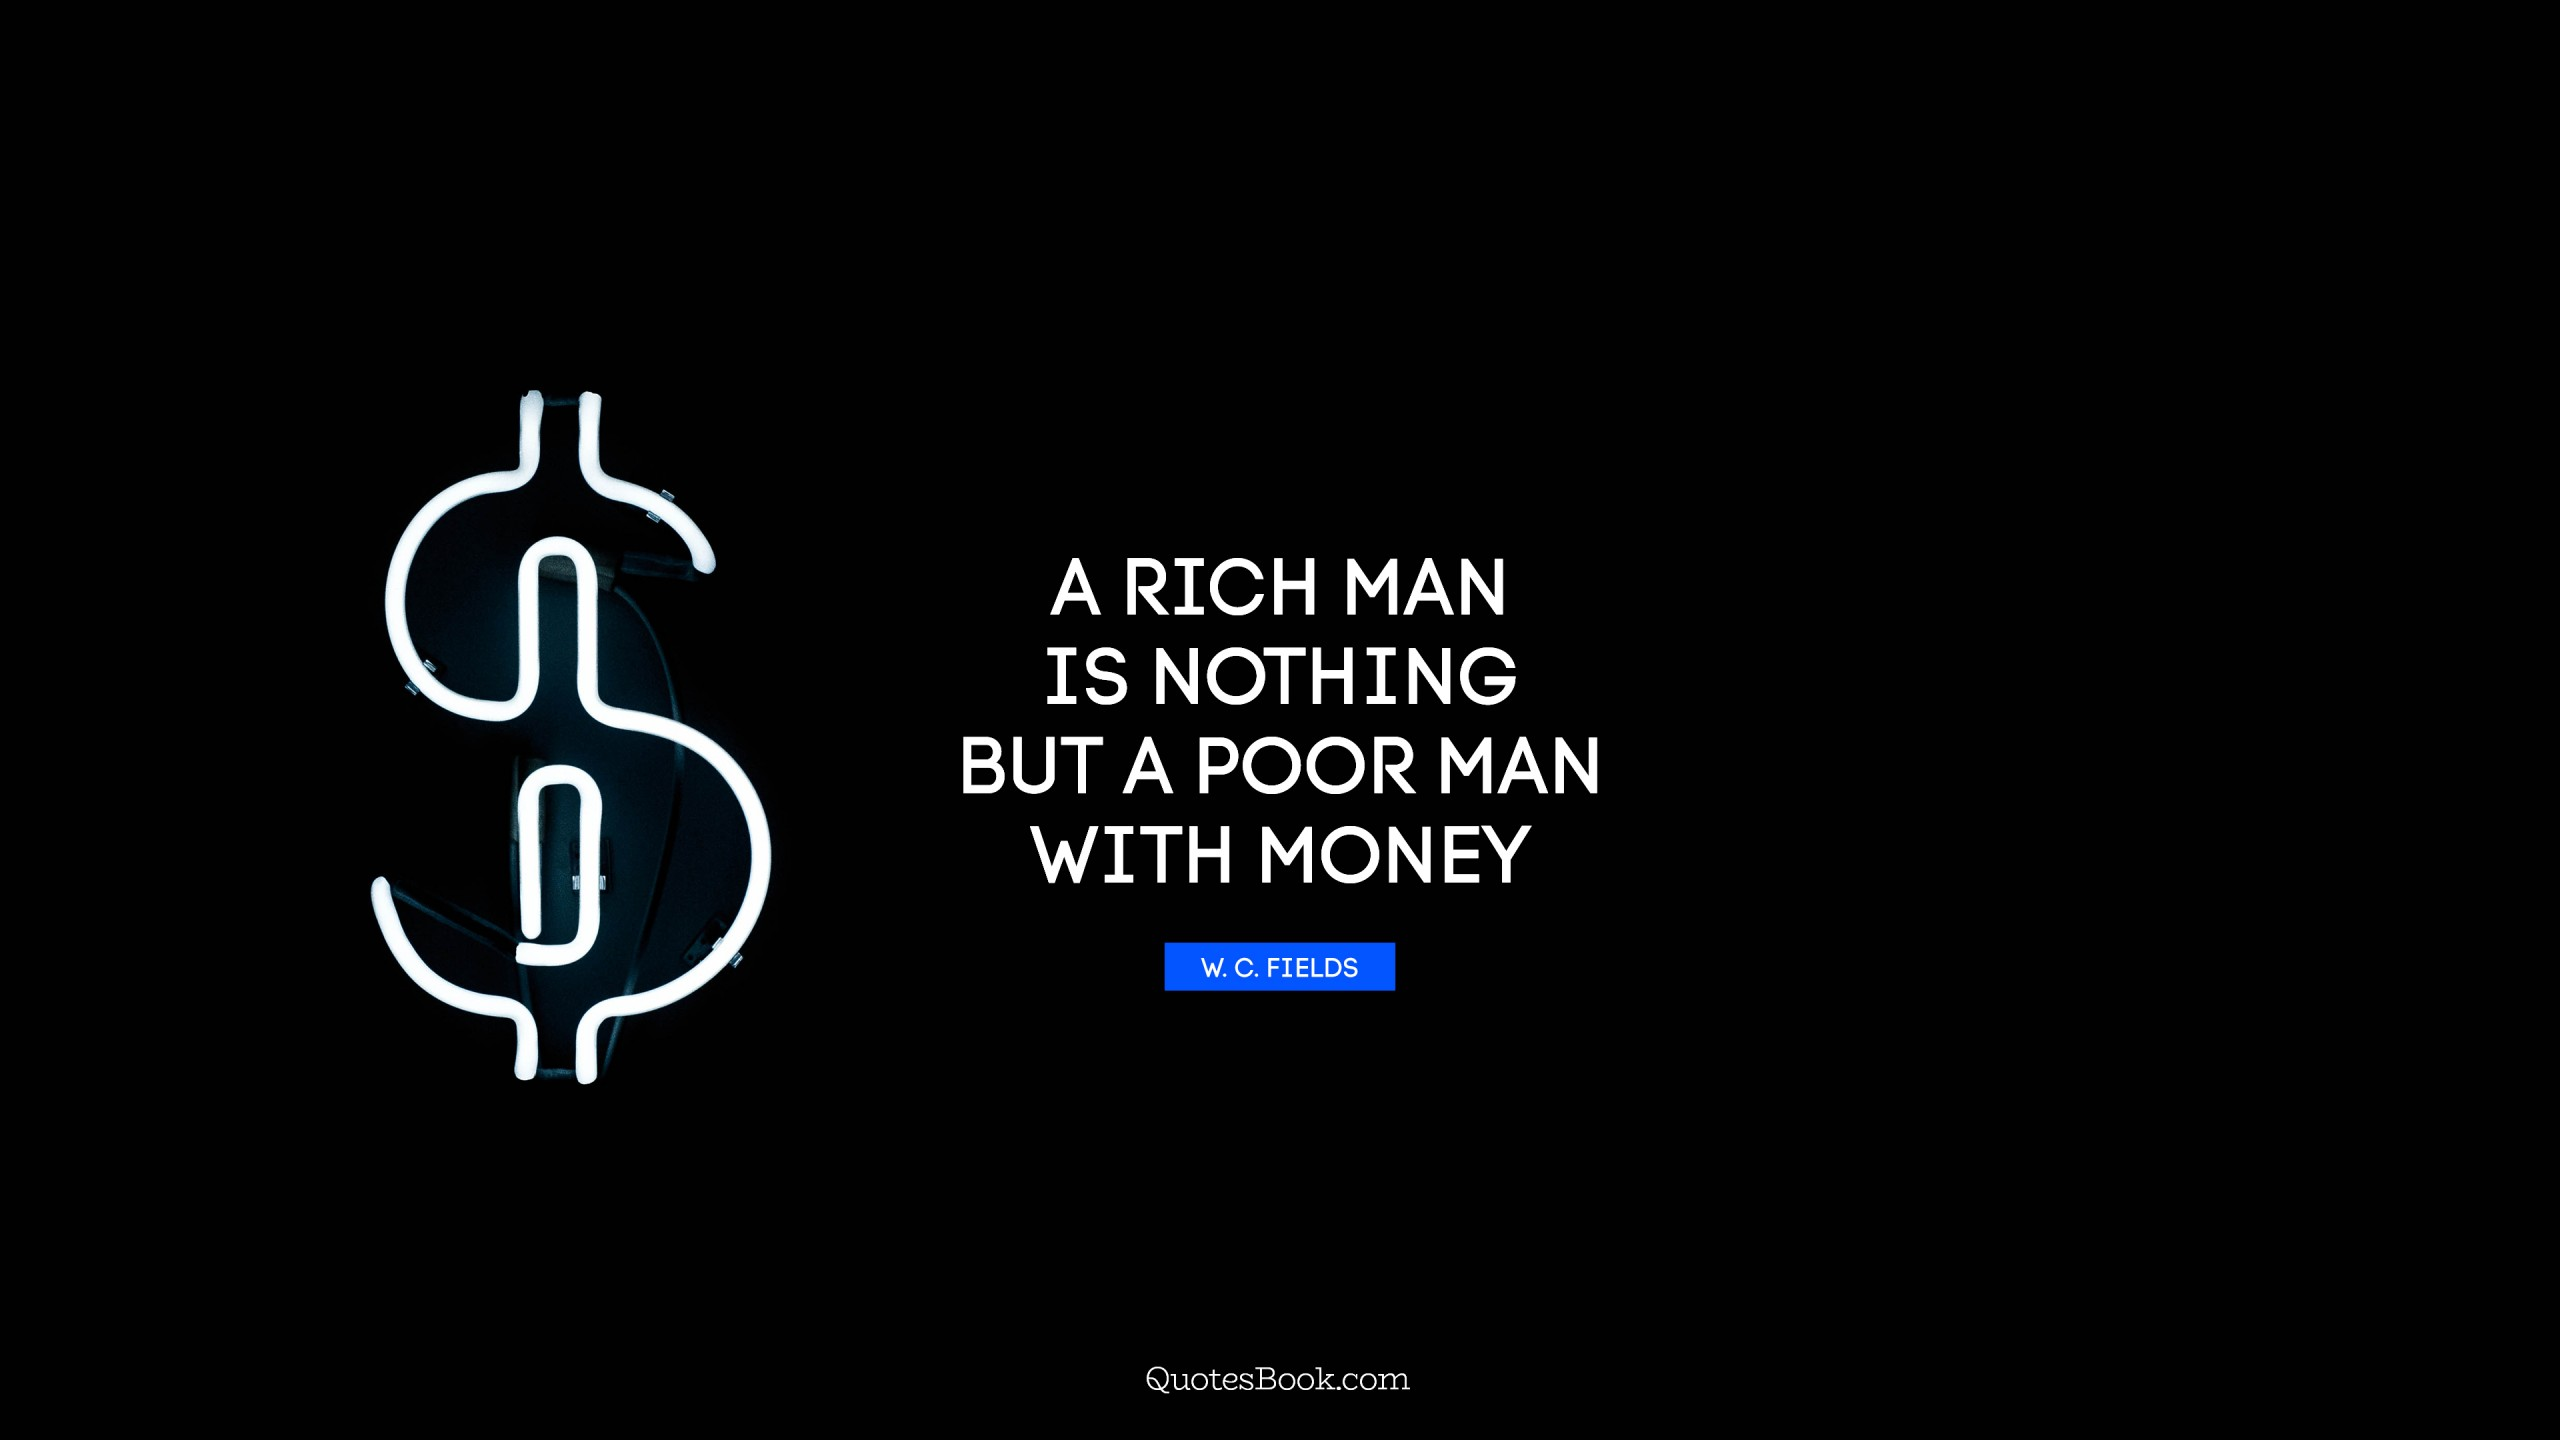 A Rich Man Is Nothing But A Poor Man With Money Quote By